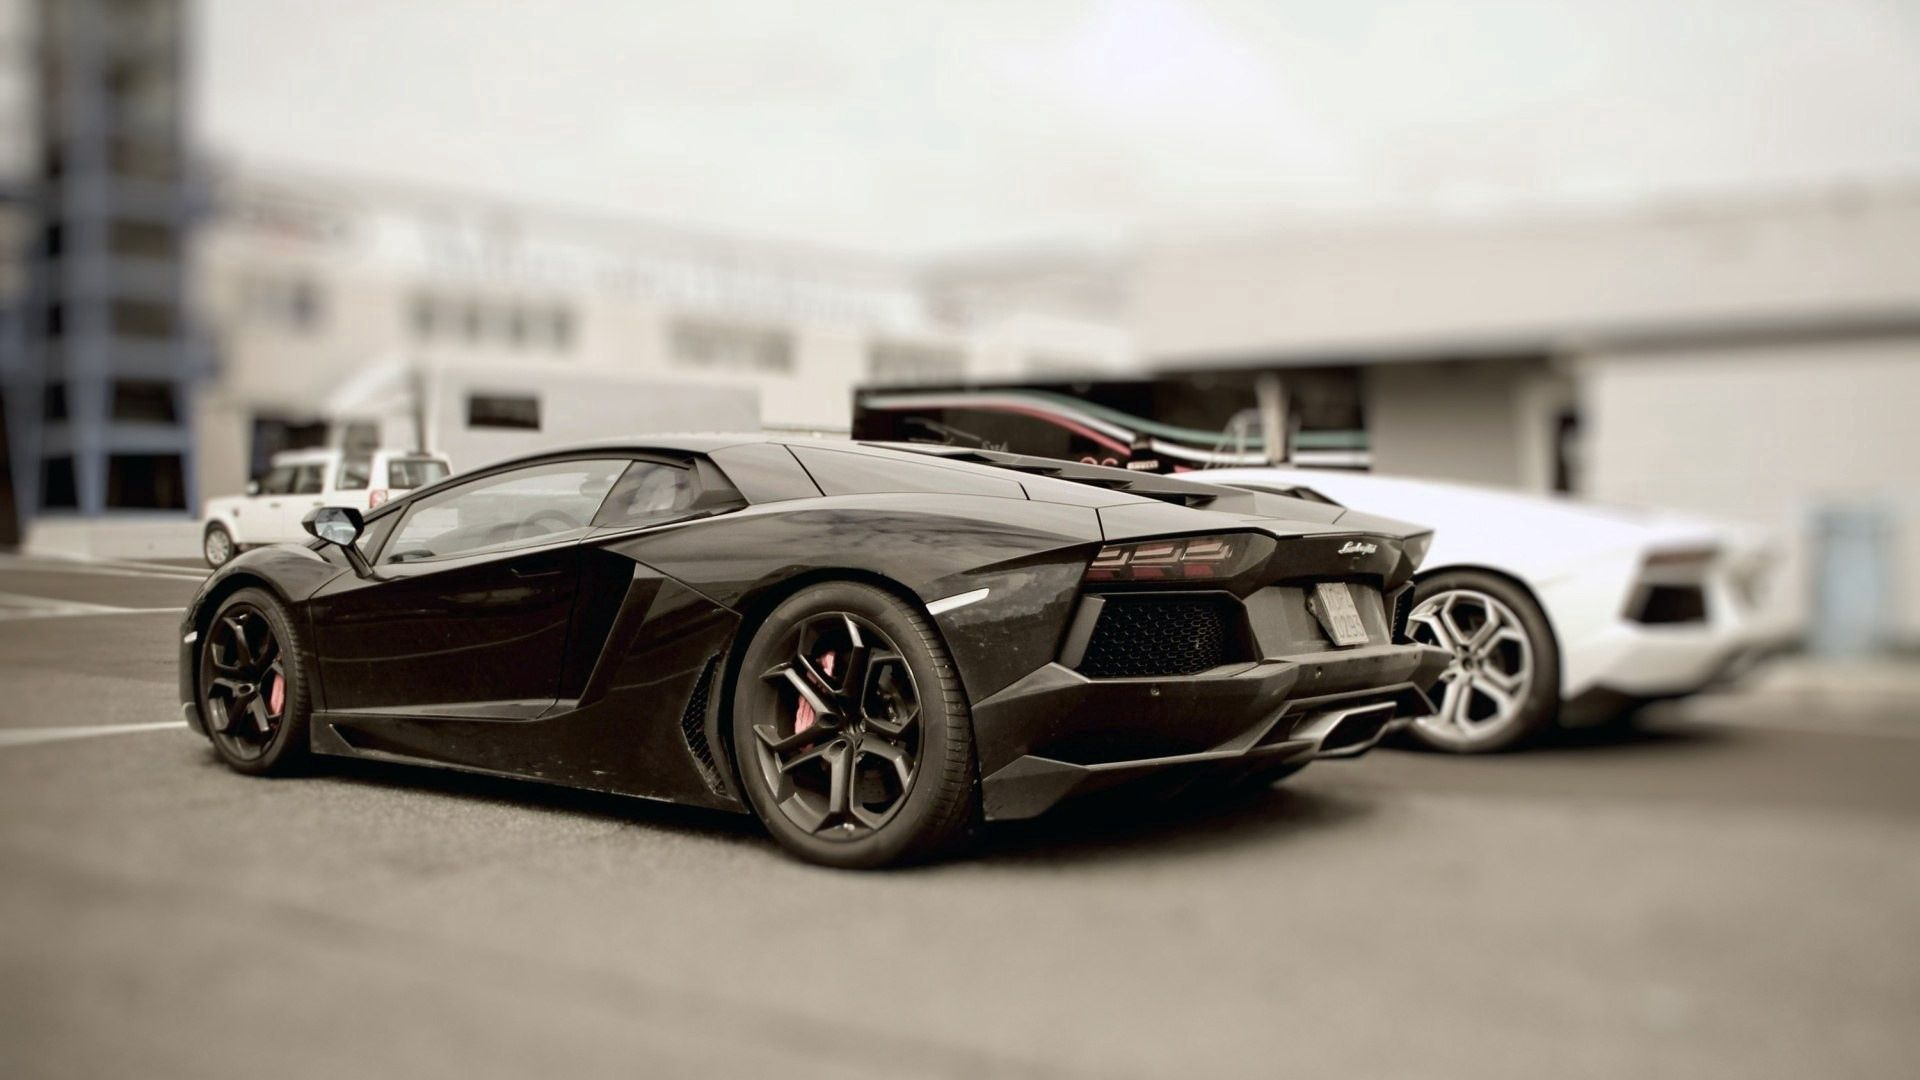 60384 download wallpaper Cars, Stylish, Auto, Lamborghini screensavers and pictures for free